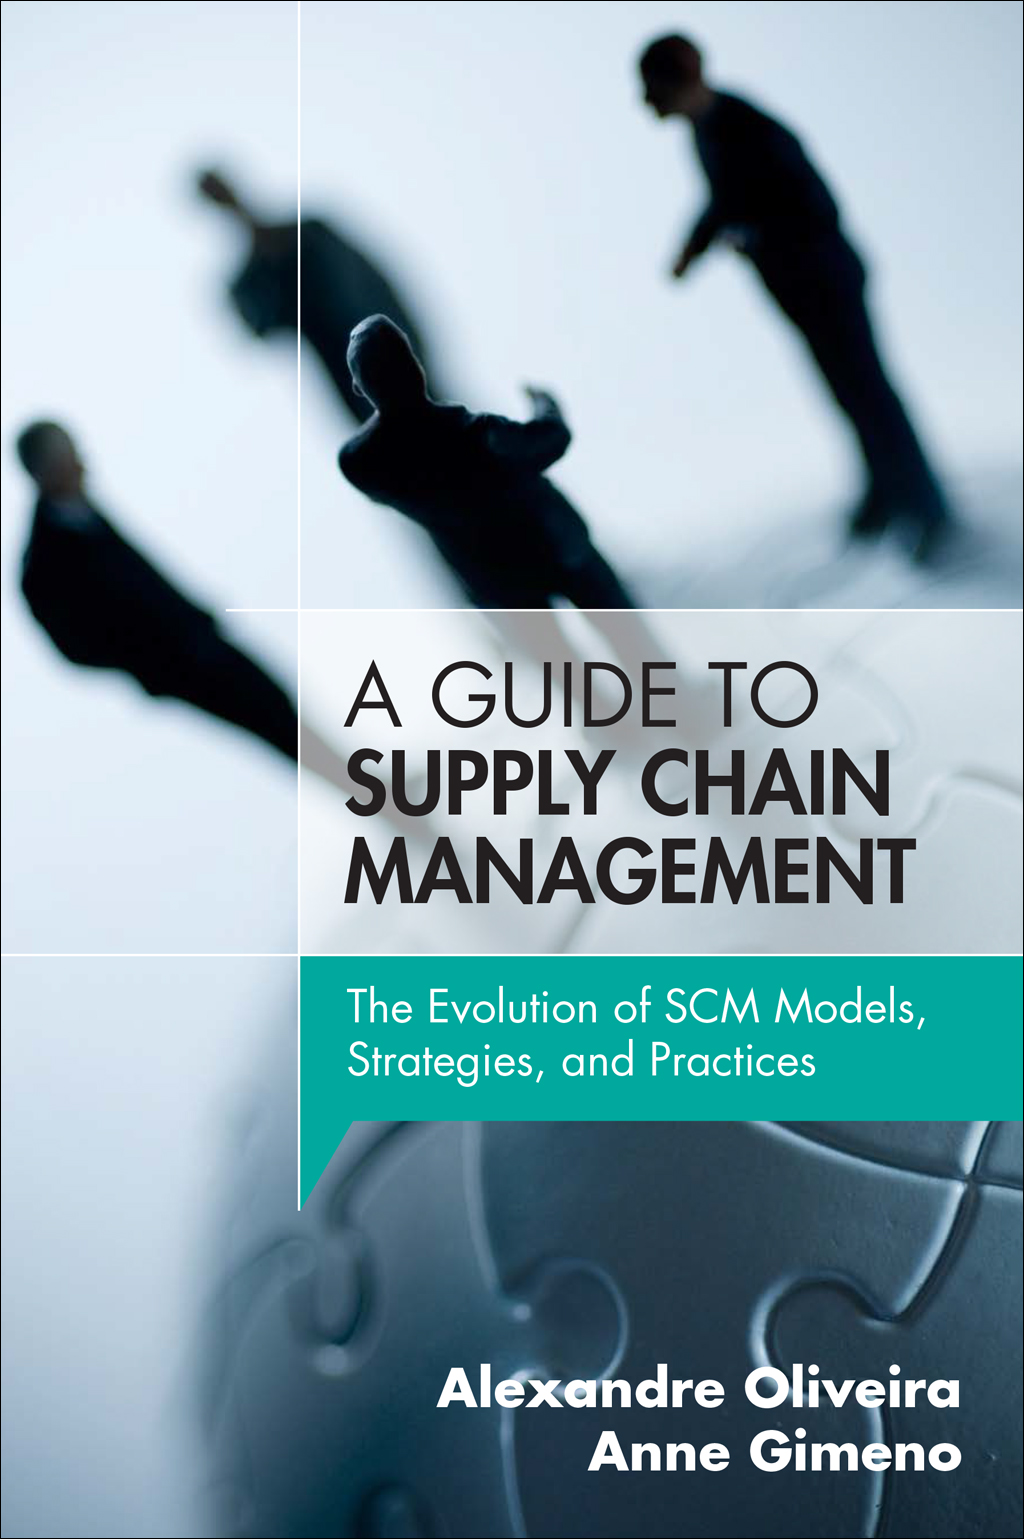 Guide to Supply Chain Management, A: The Evolution of SCM Models, Strategies, and Practices